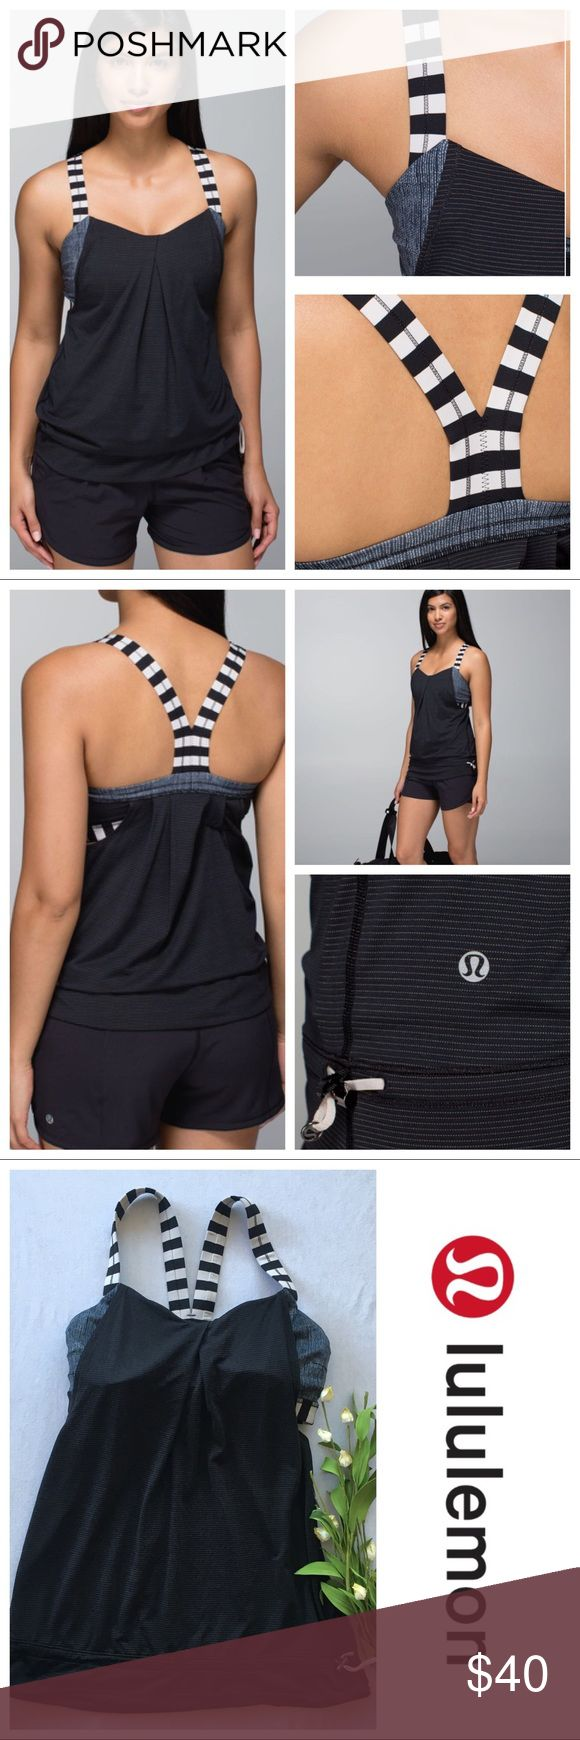 Lululemon Rest Less Tank Black Burlap Size 6 Lululemon Rest Less Tank Size 6 Black / Burlap Texture Black Dune /Apex Stripe Black Dune lightweight tank, sweat-wicking fabrics & a breezy fit to help us keep our cool in the gym. The medium-support, medium-coverage bra keeps our ladies secure and the drawcord at the waistband helps keep our top in place  4-way stretch Luxtreme bra is sweat-wicking & breathable lightweight and breathable fabric body wicks sweat away from your skin  designed with…